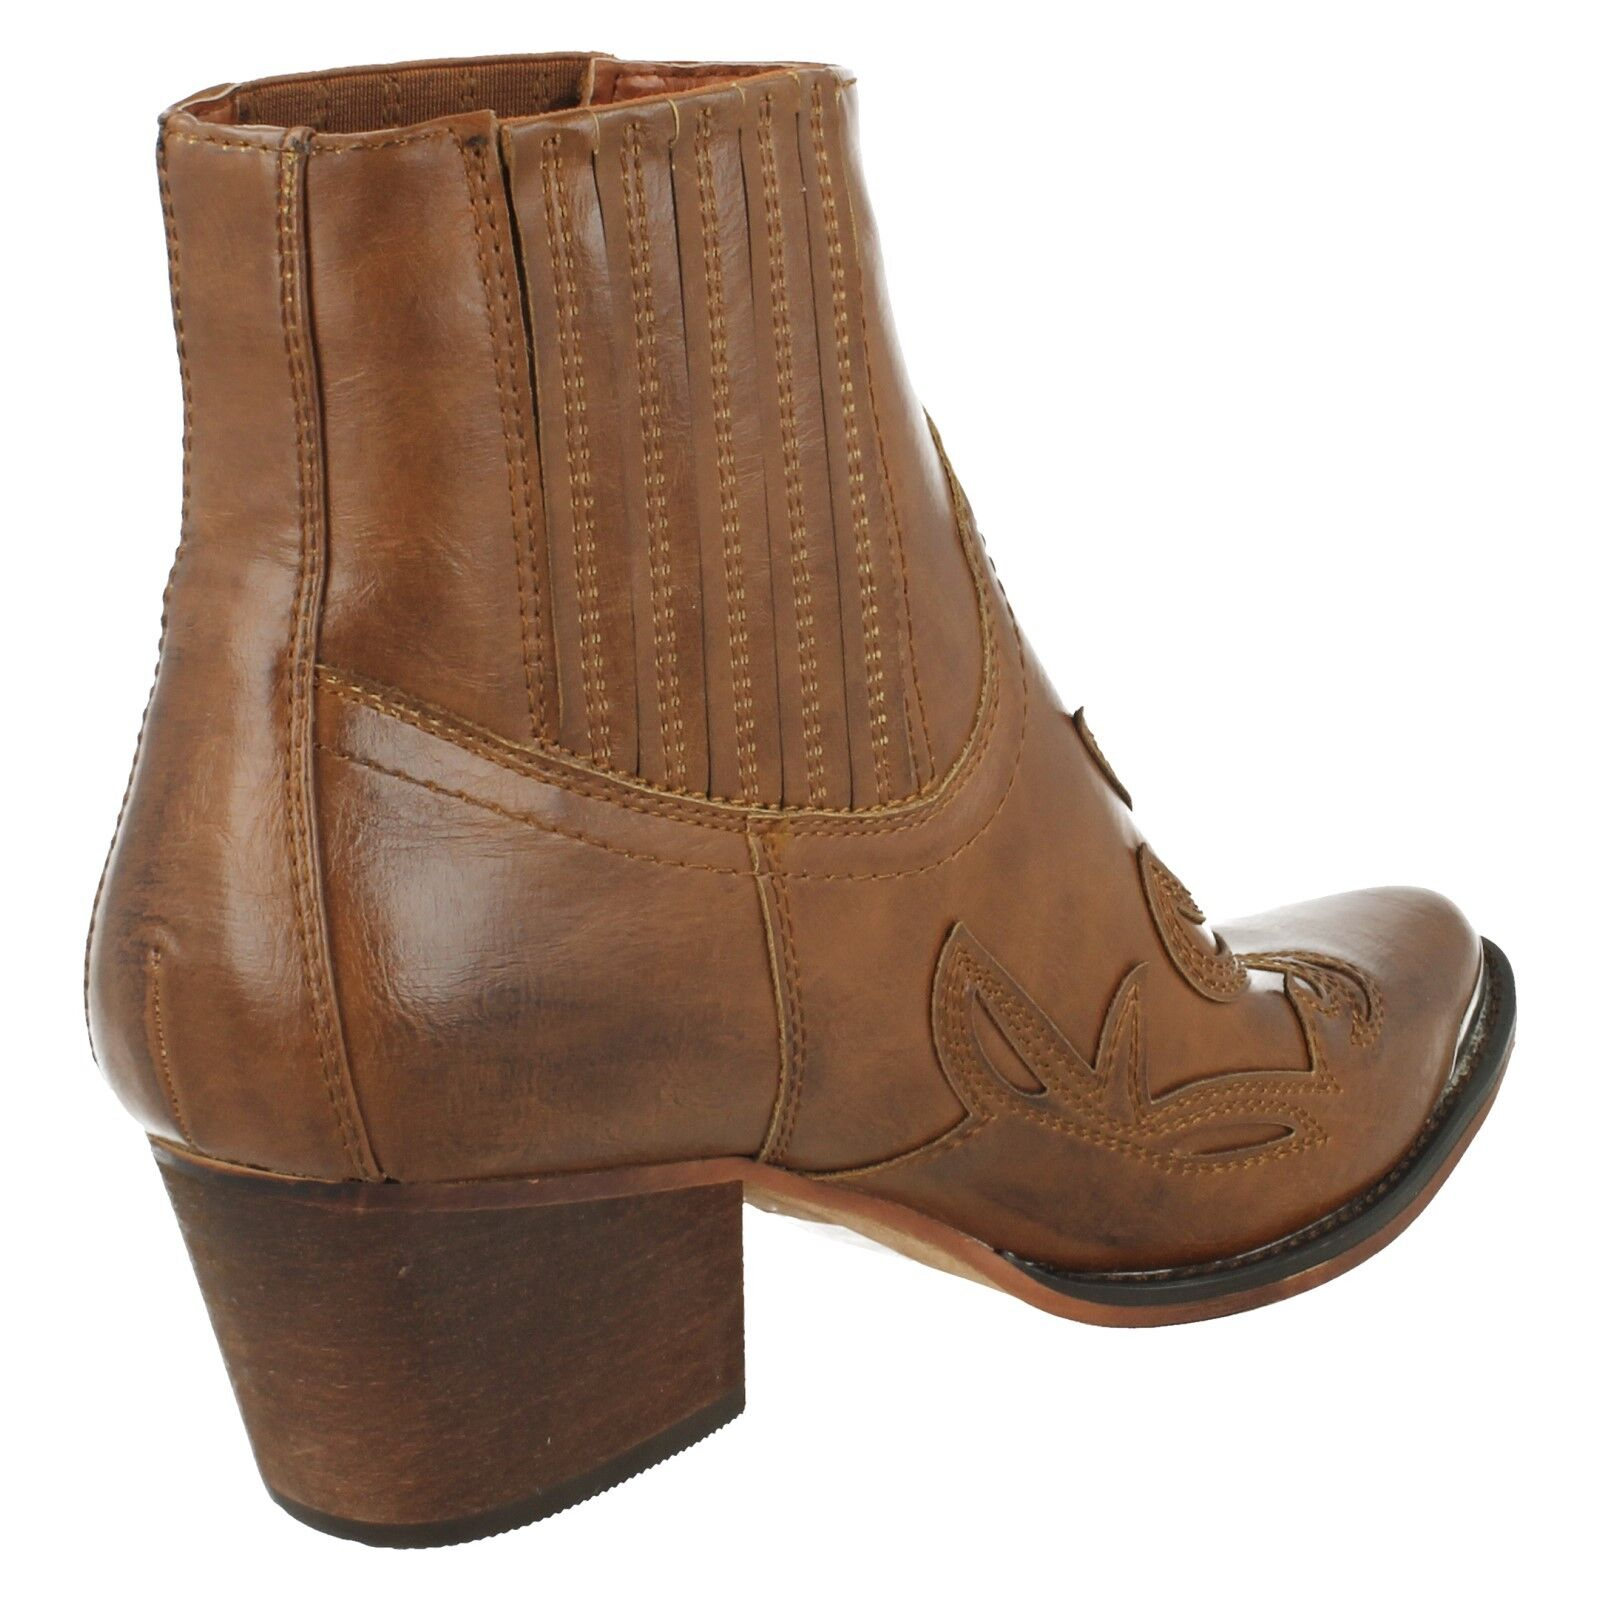 LADIES WINTER ANKLE Stiefel MID PULL ON POINTED TOE MID Stiefel HEEL DOWN TO EARTH F5R0940 da8125